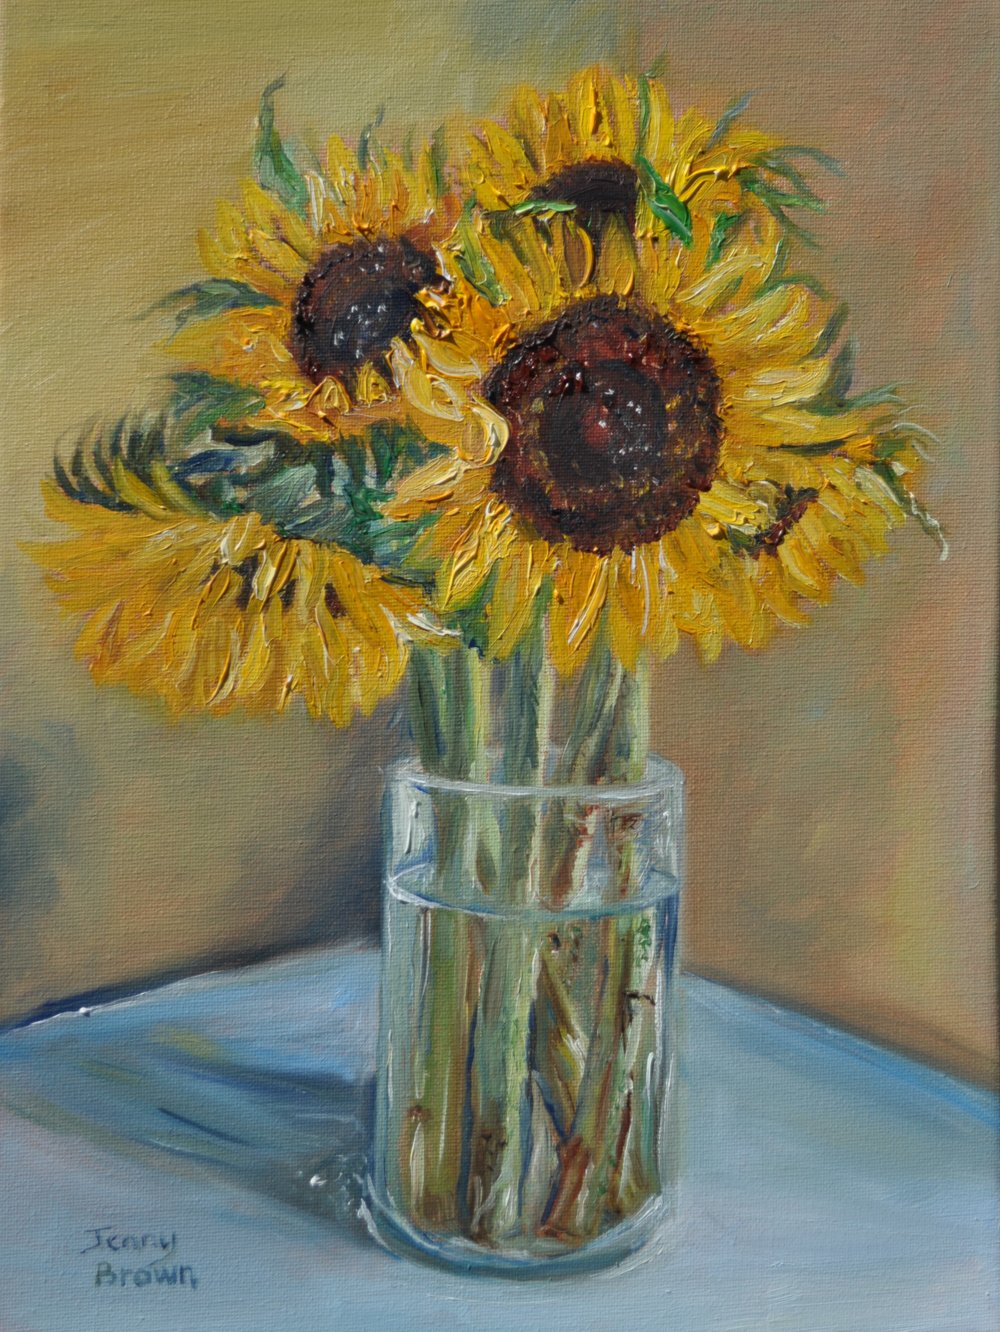 Sunflowers - An evocative oil-rendering of woody stems refracted through water in a glass vase. The stems are often overlooked or hidden: I wanted to bring the beauty of water to magnify what is usually unseen.